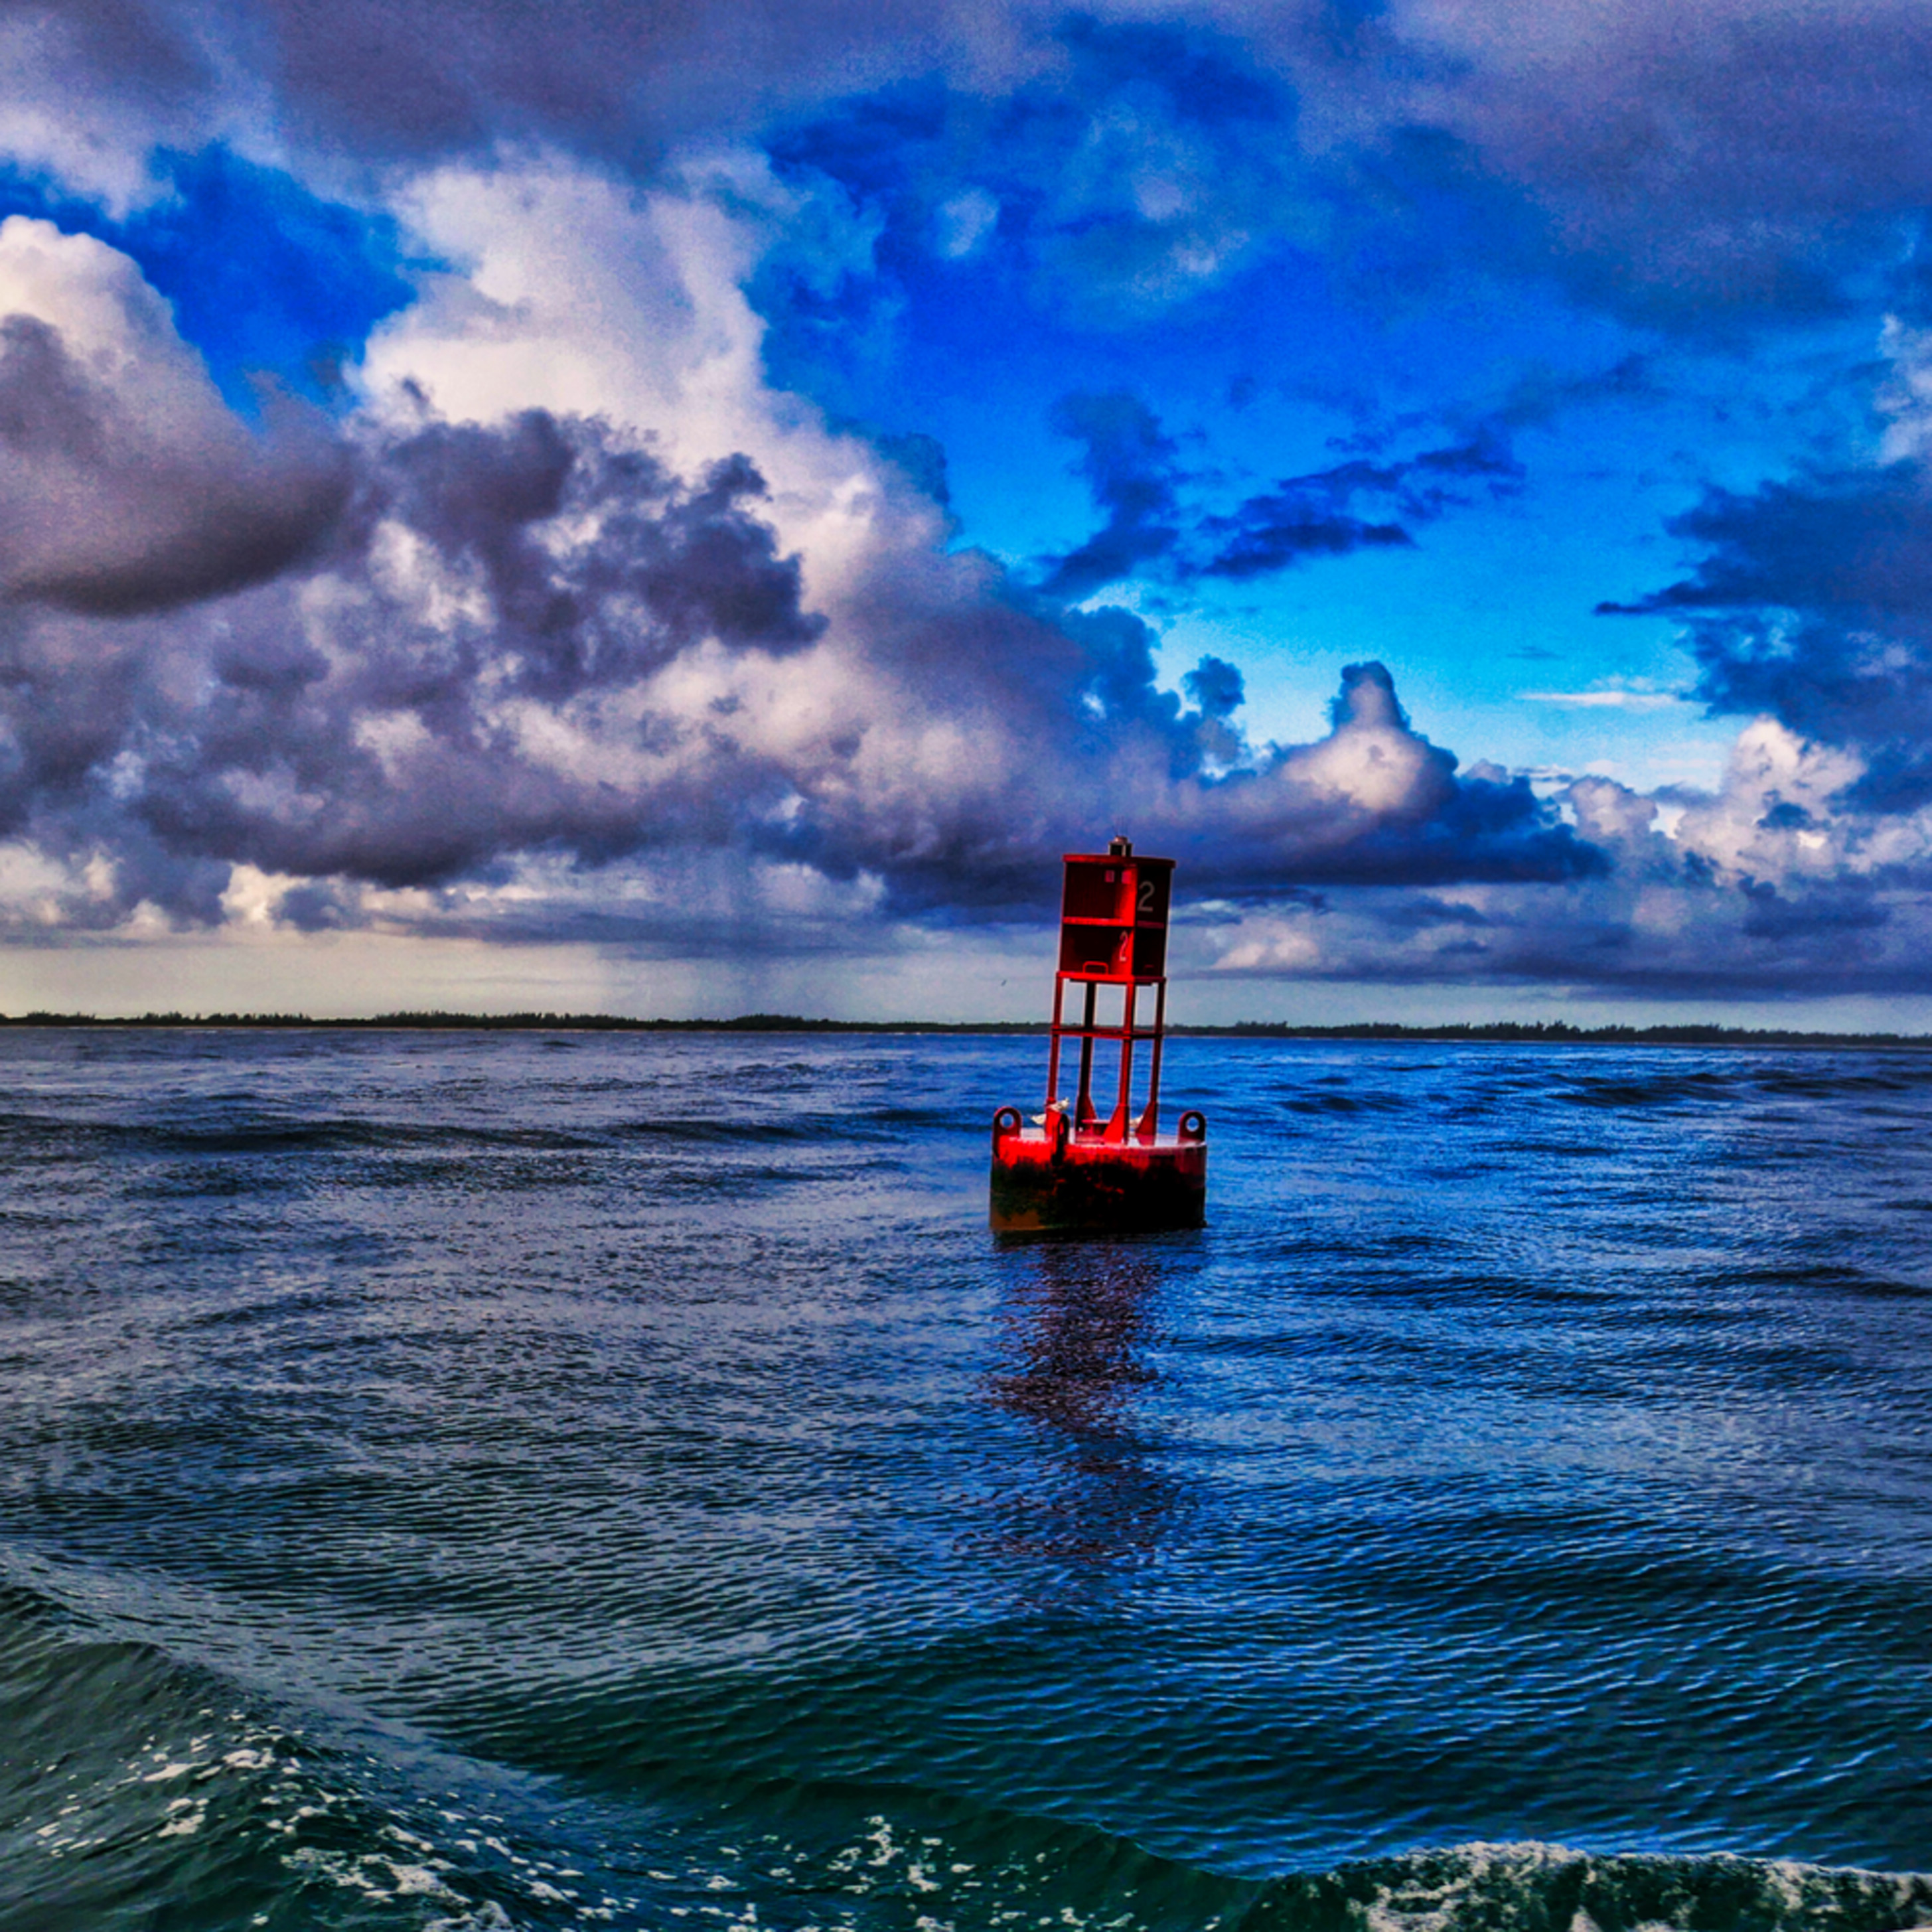 The red buoy ok9h7n